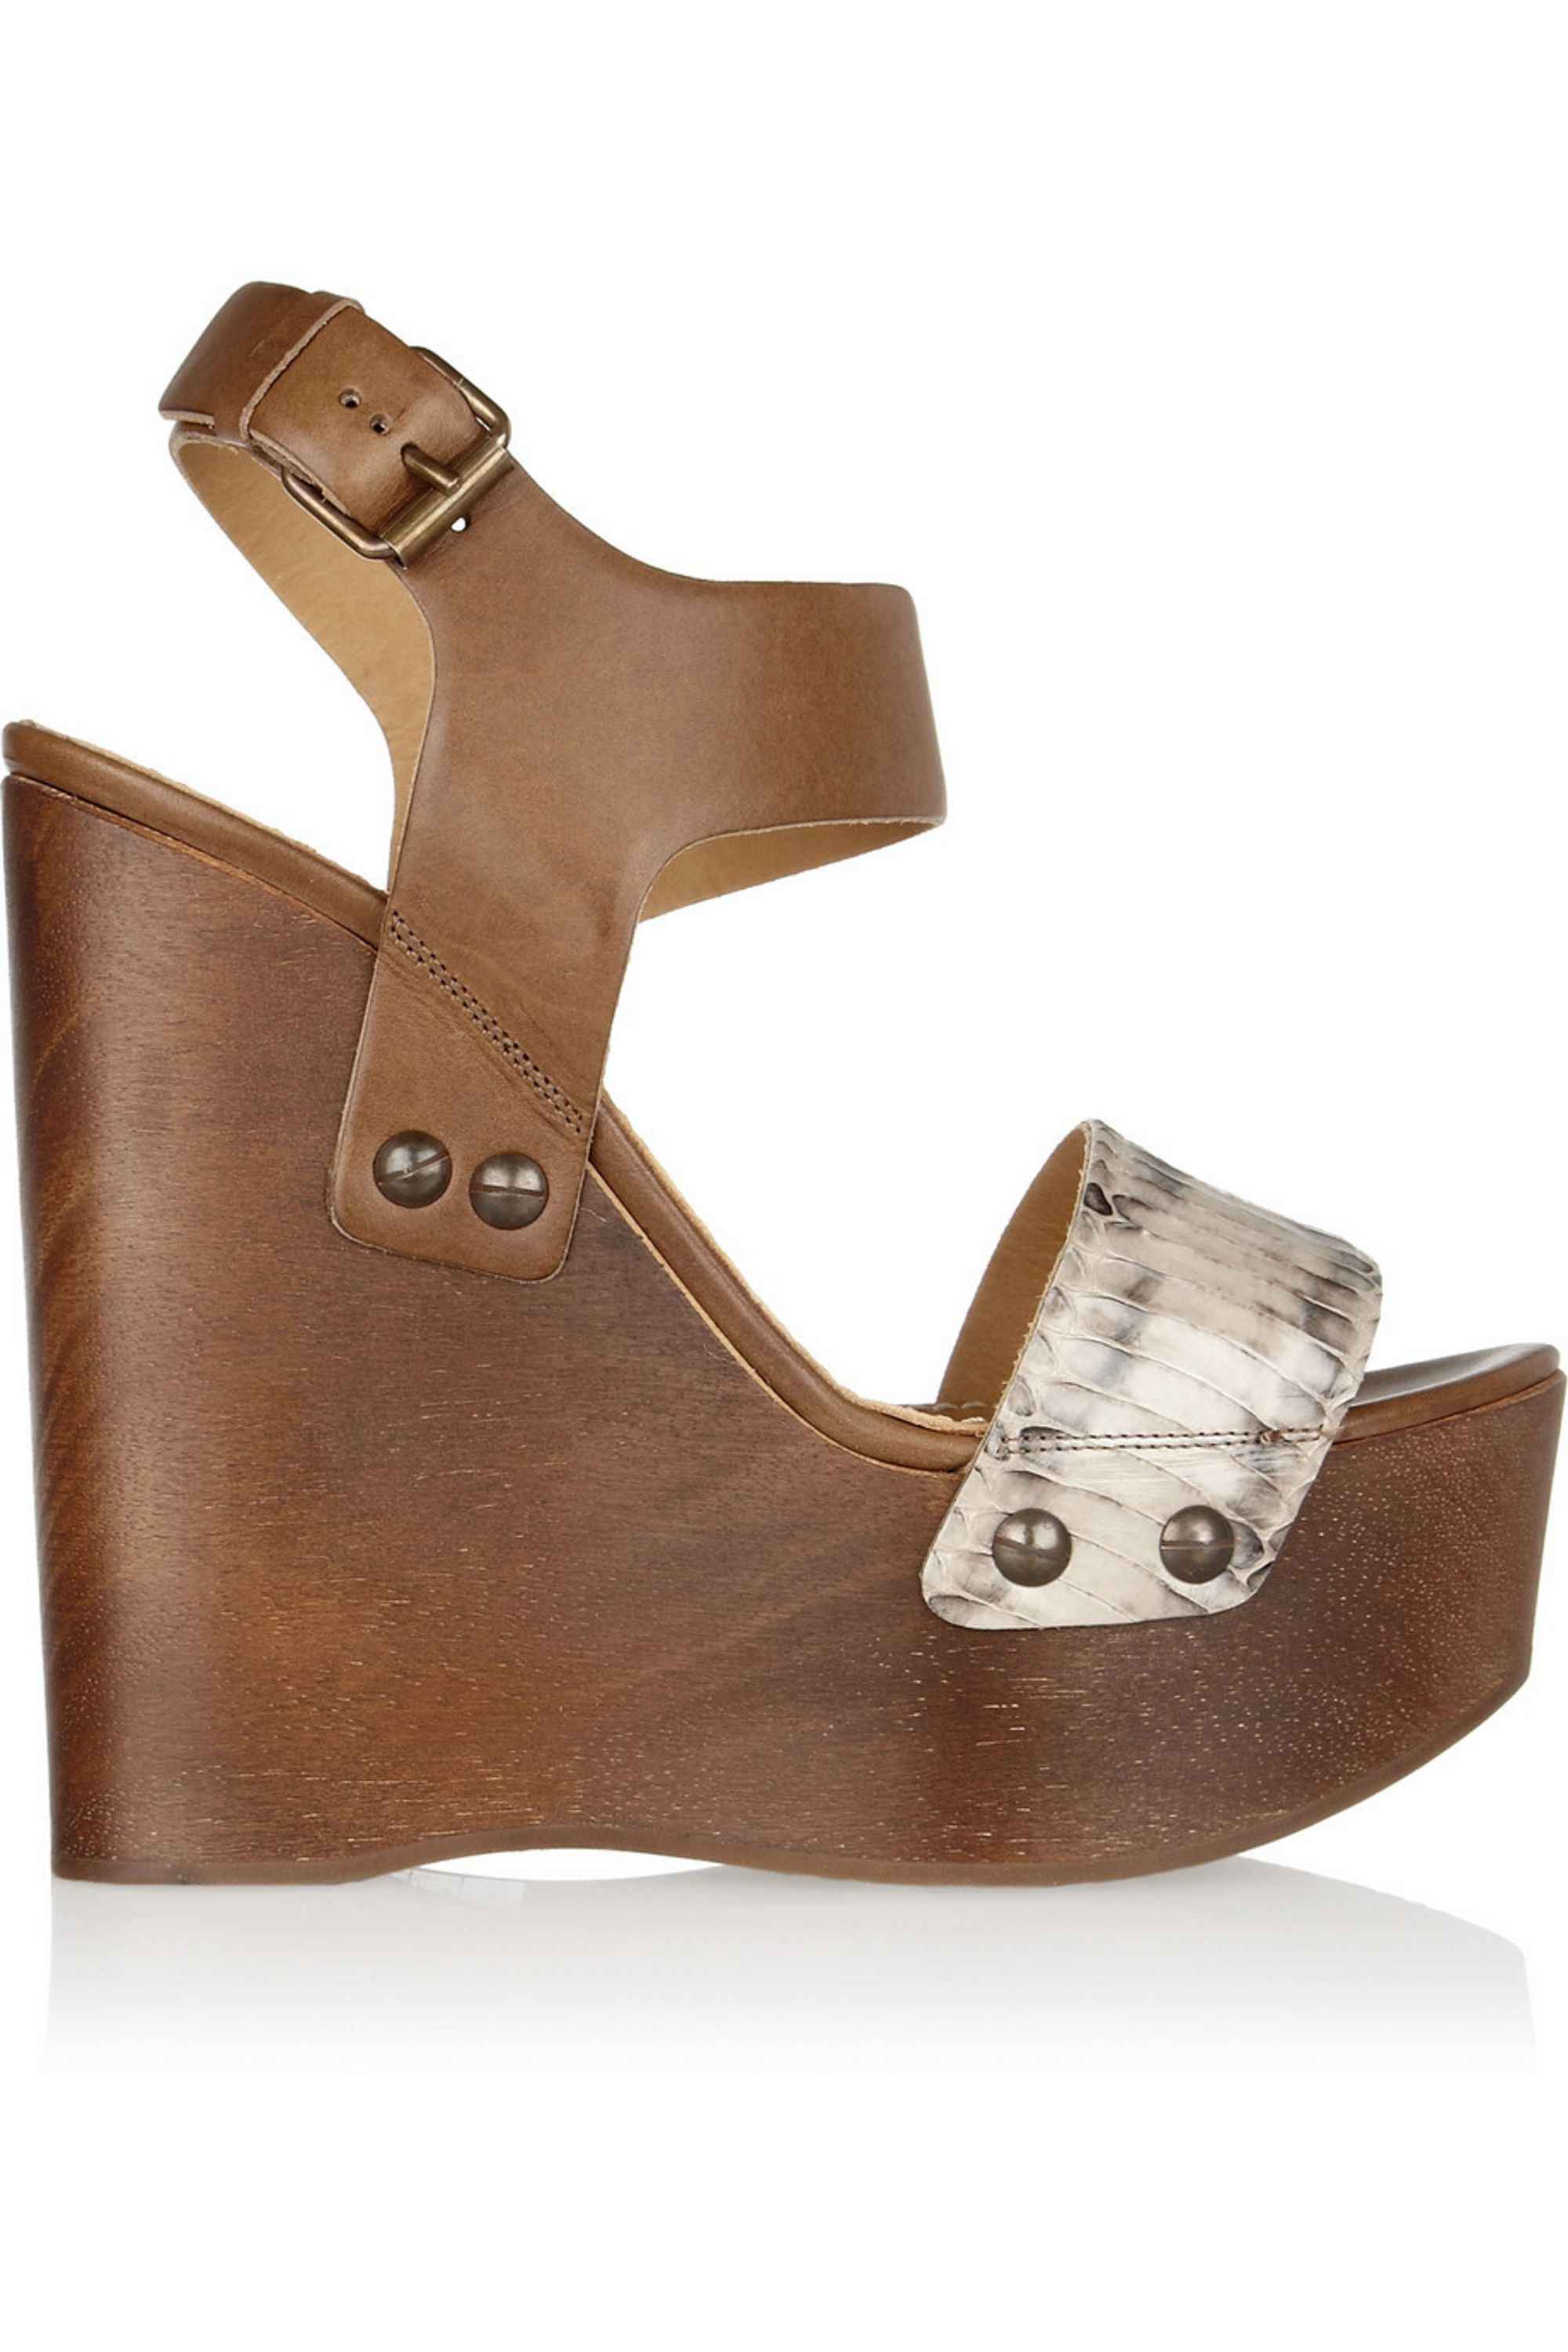 Lanvin Watersnake and leather wooden wedge sandals